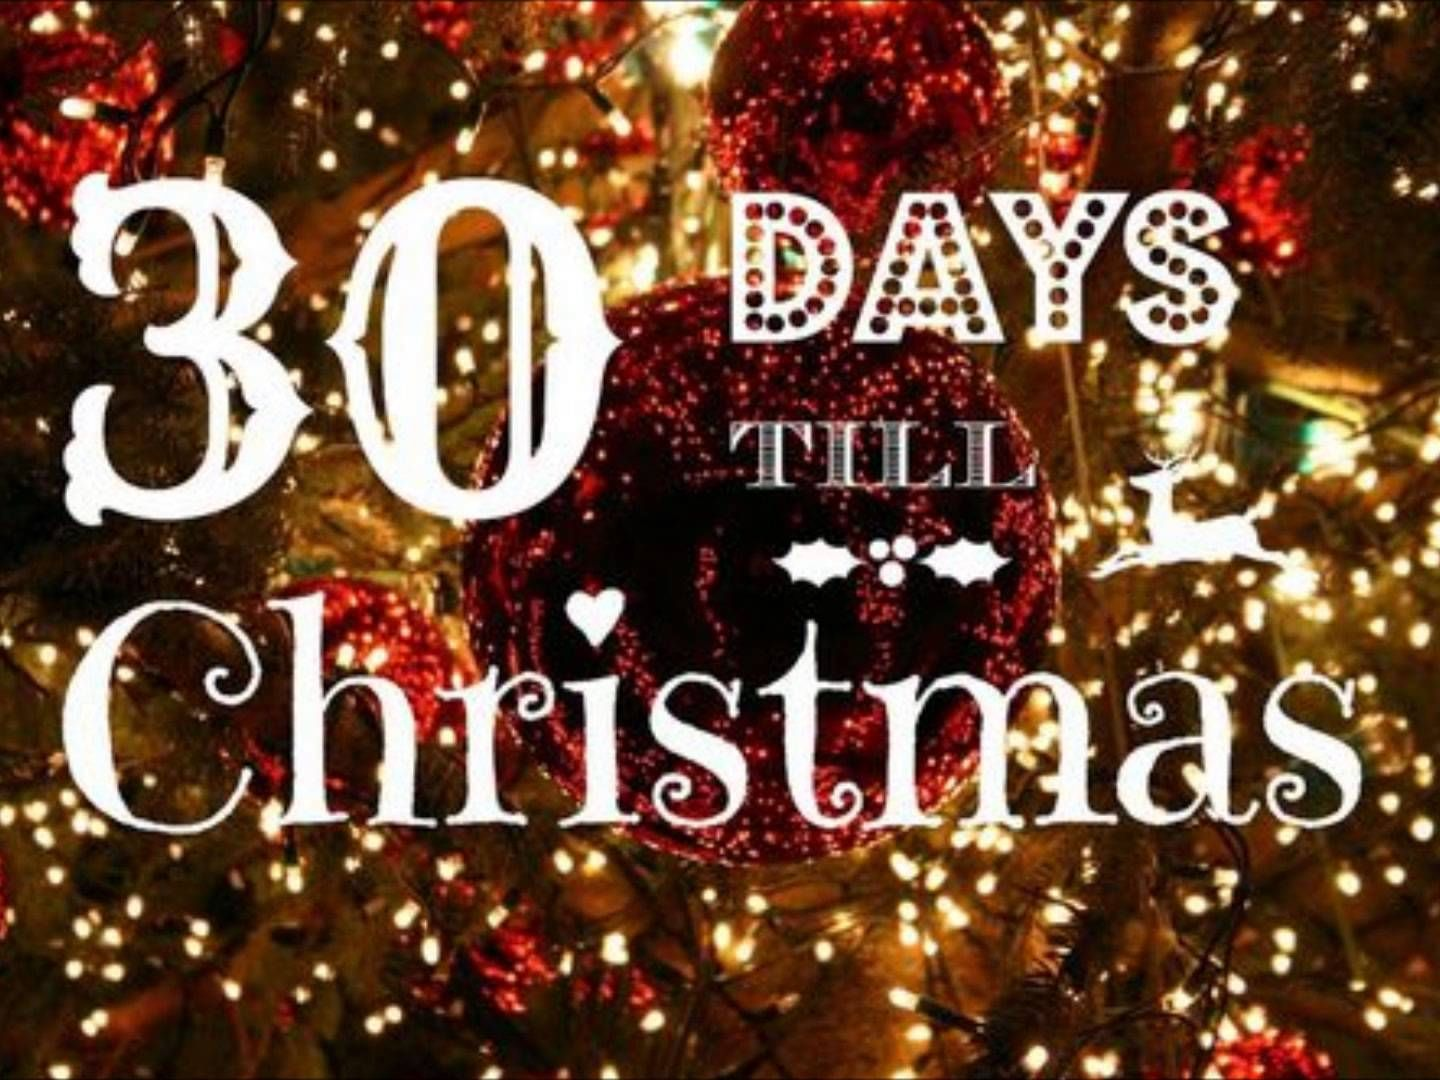 30 Days Till Christmas Pictures, Photos, and Images for Facebook ...